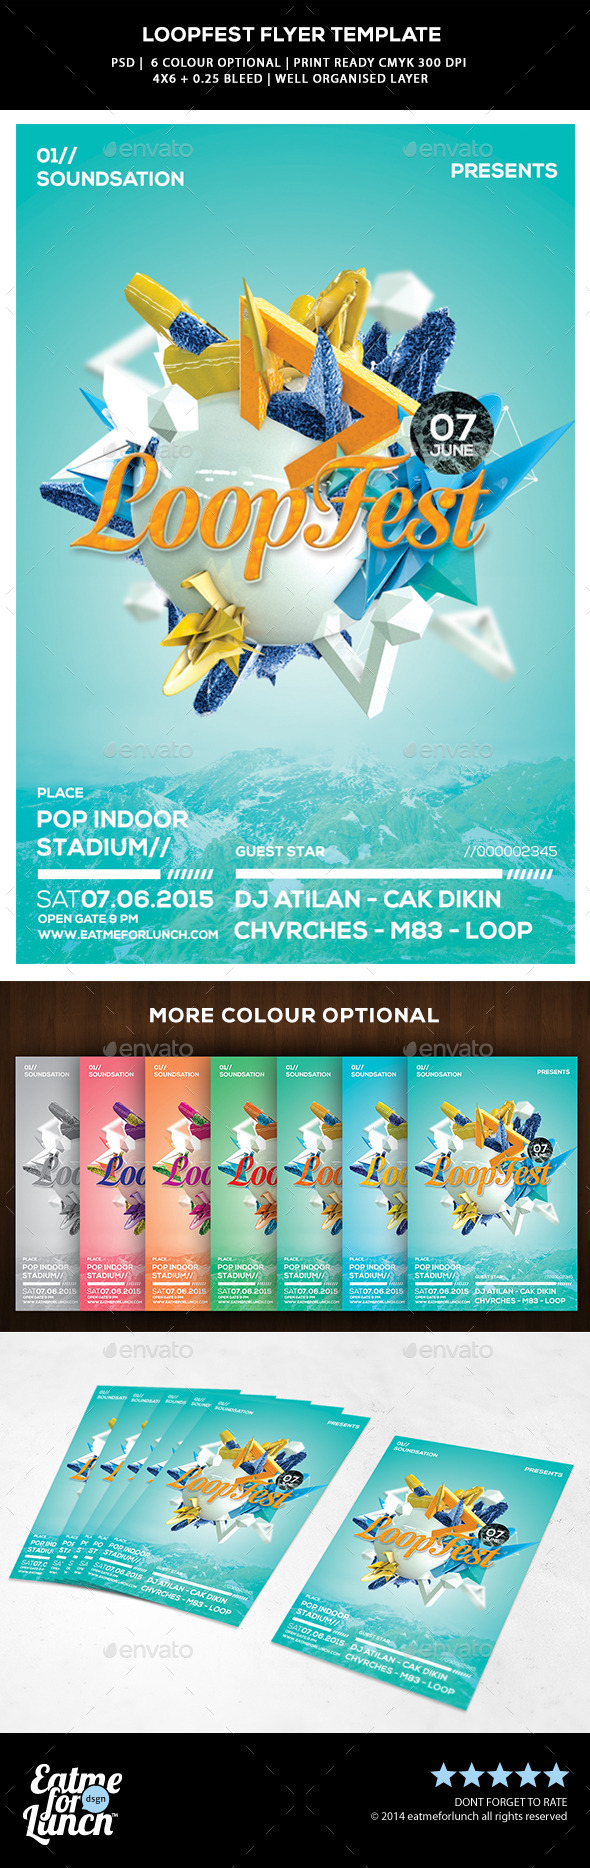 Pop Abstract Flyer Template - Loop Fest - Concerts Events